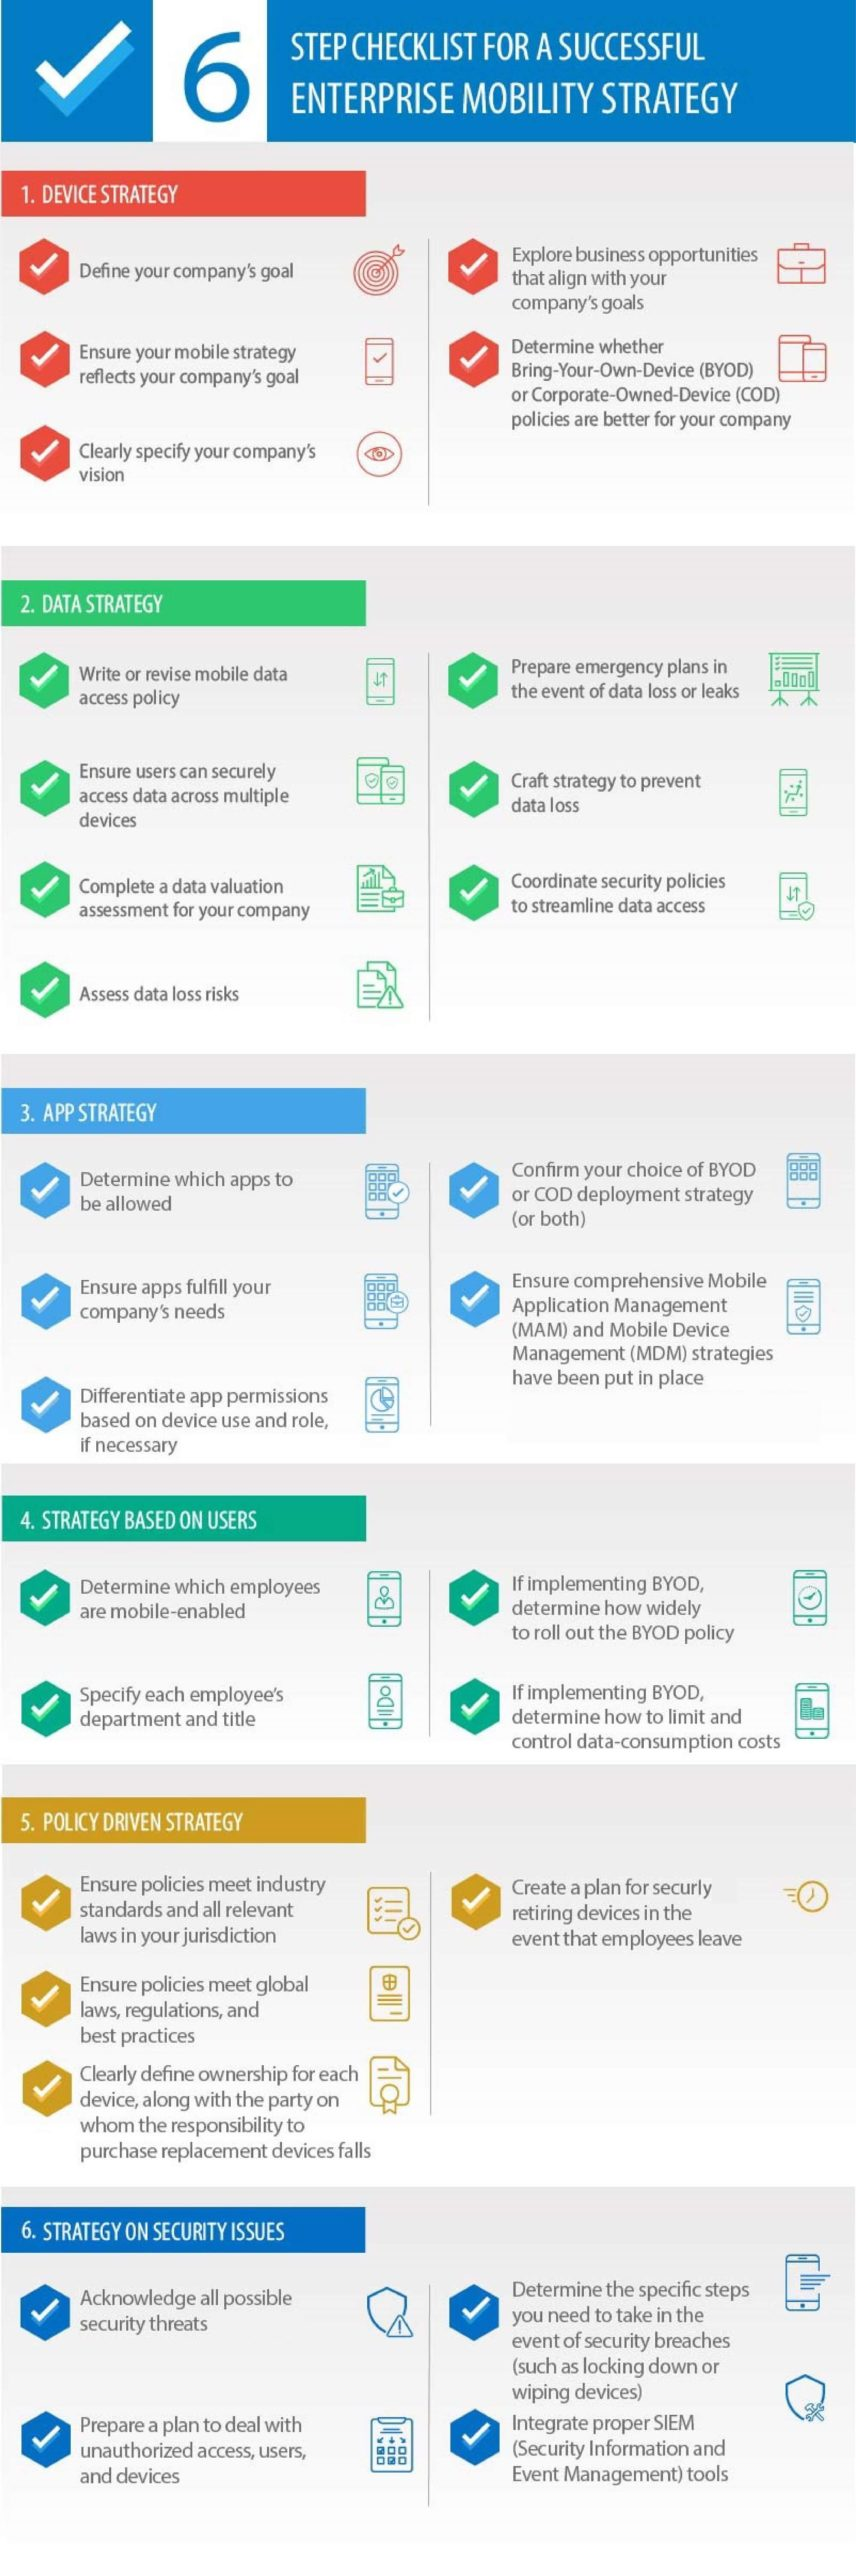 Updated - Checklist For A Successfull Enterprise Mobility Strategy